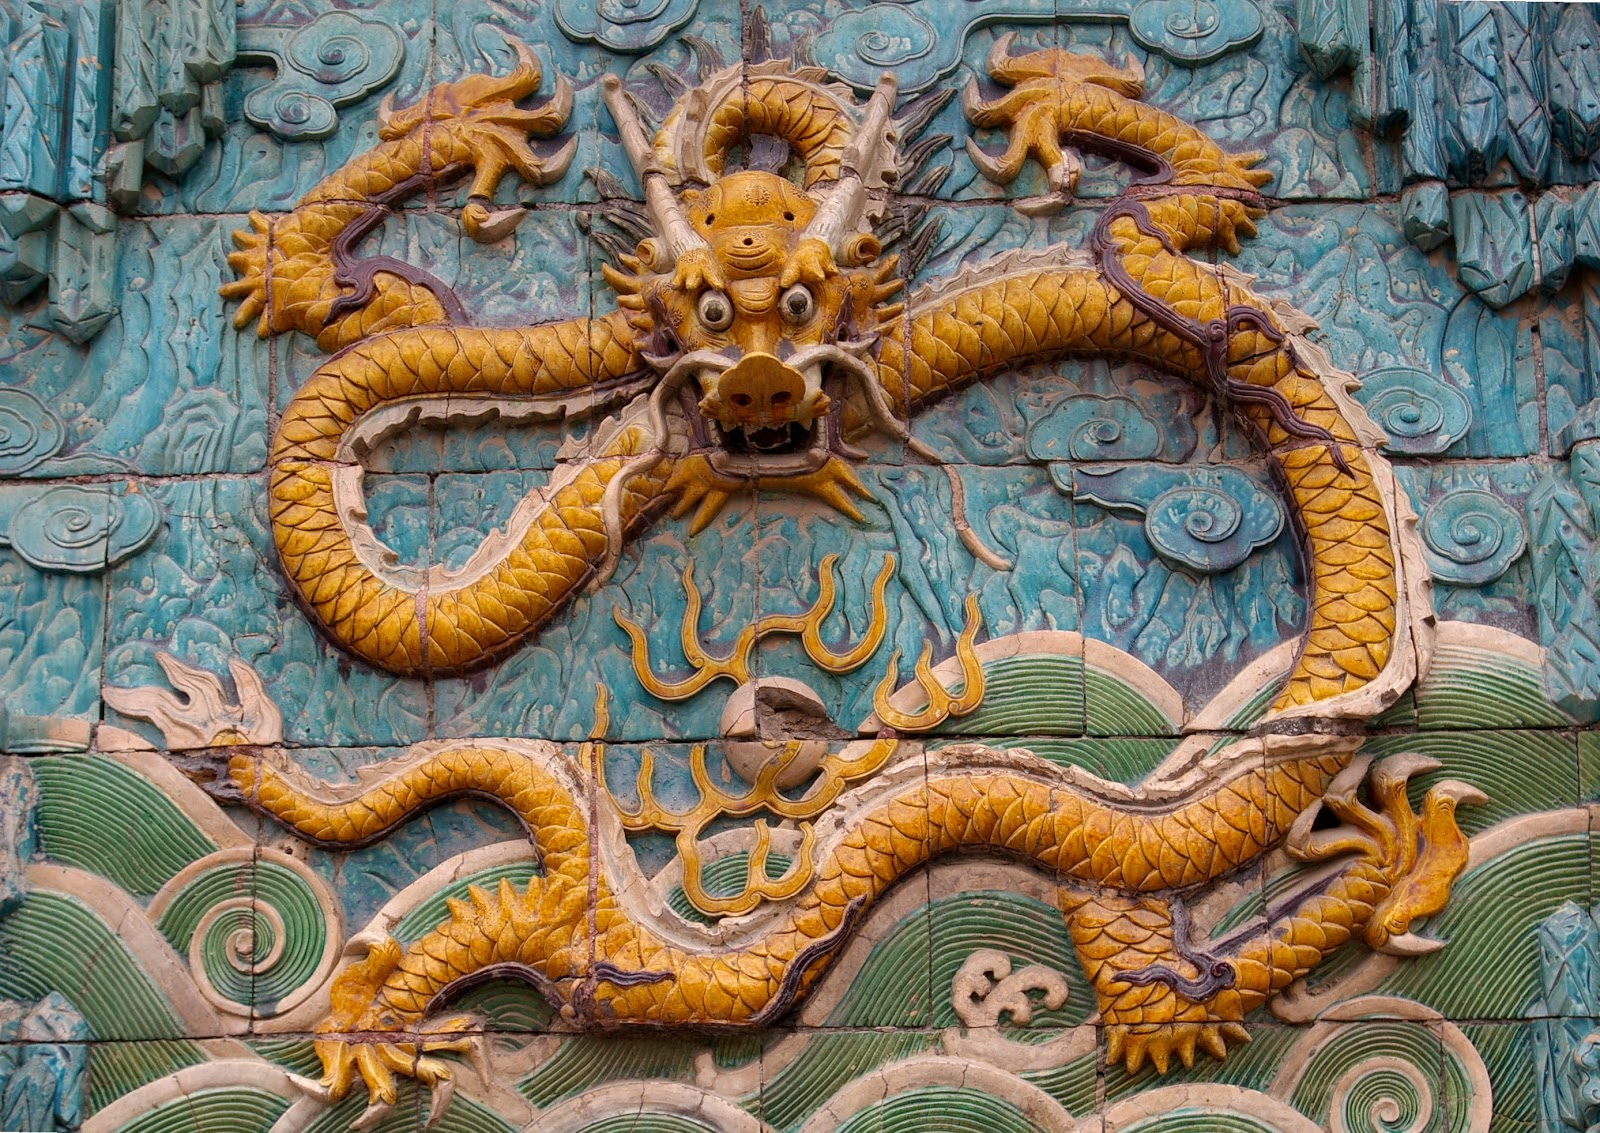 China Dragon: Why Do Whites Hate, Demonize, Fear And Look Down On Blacks